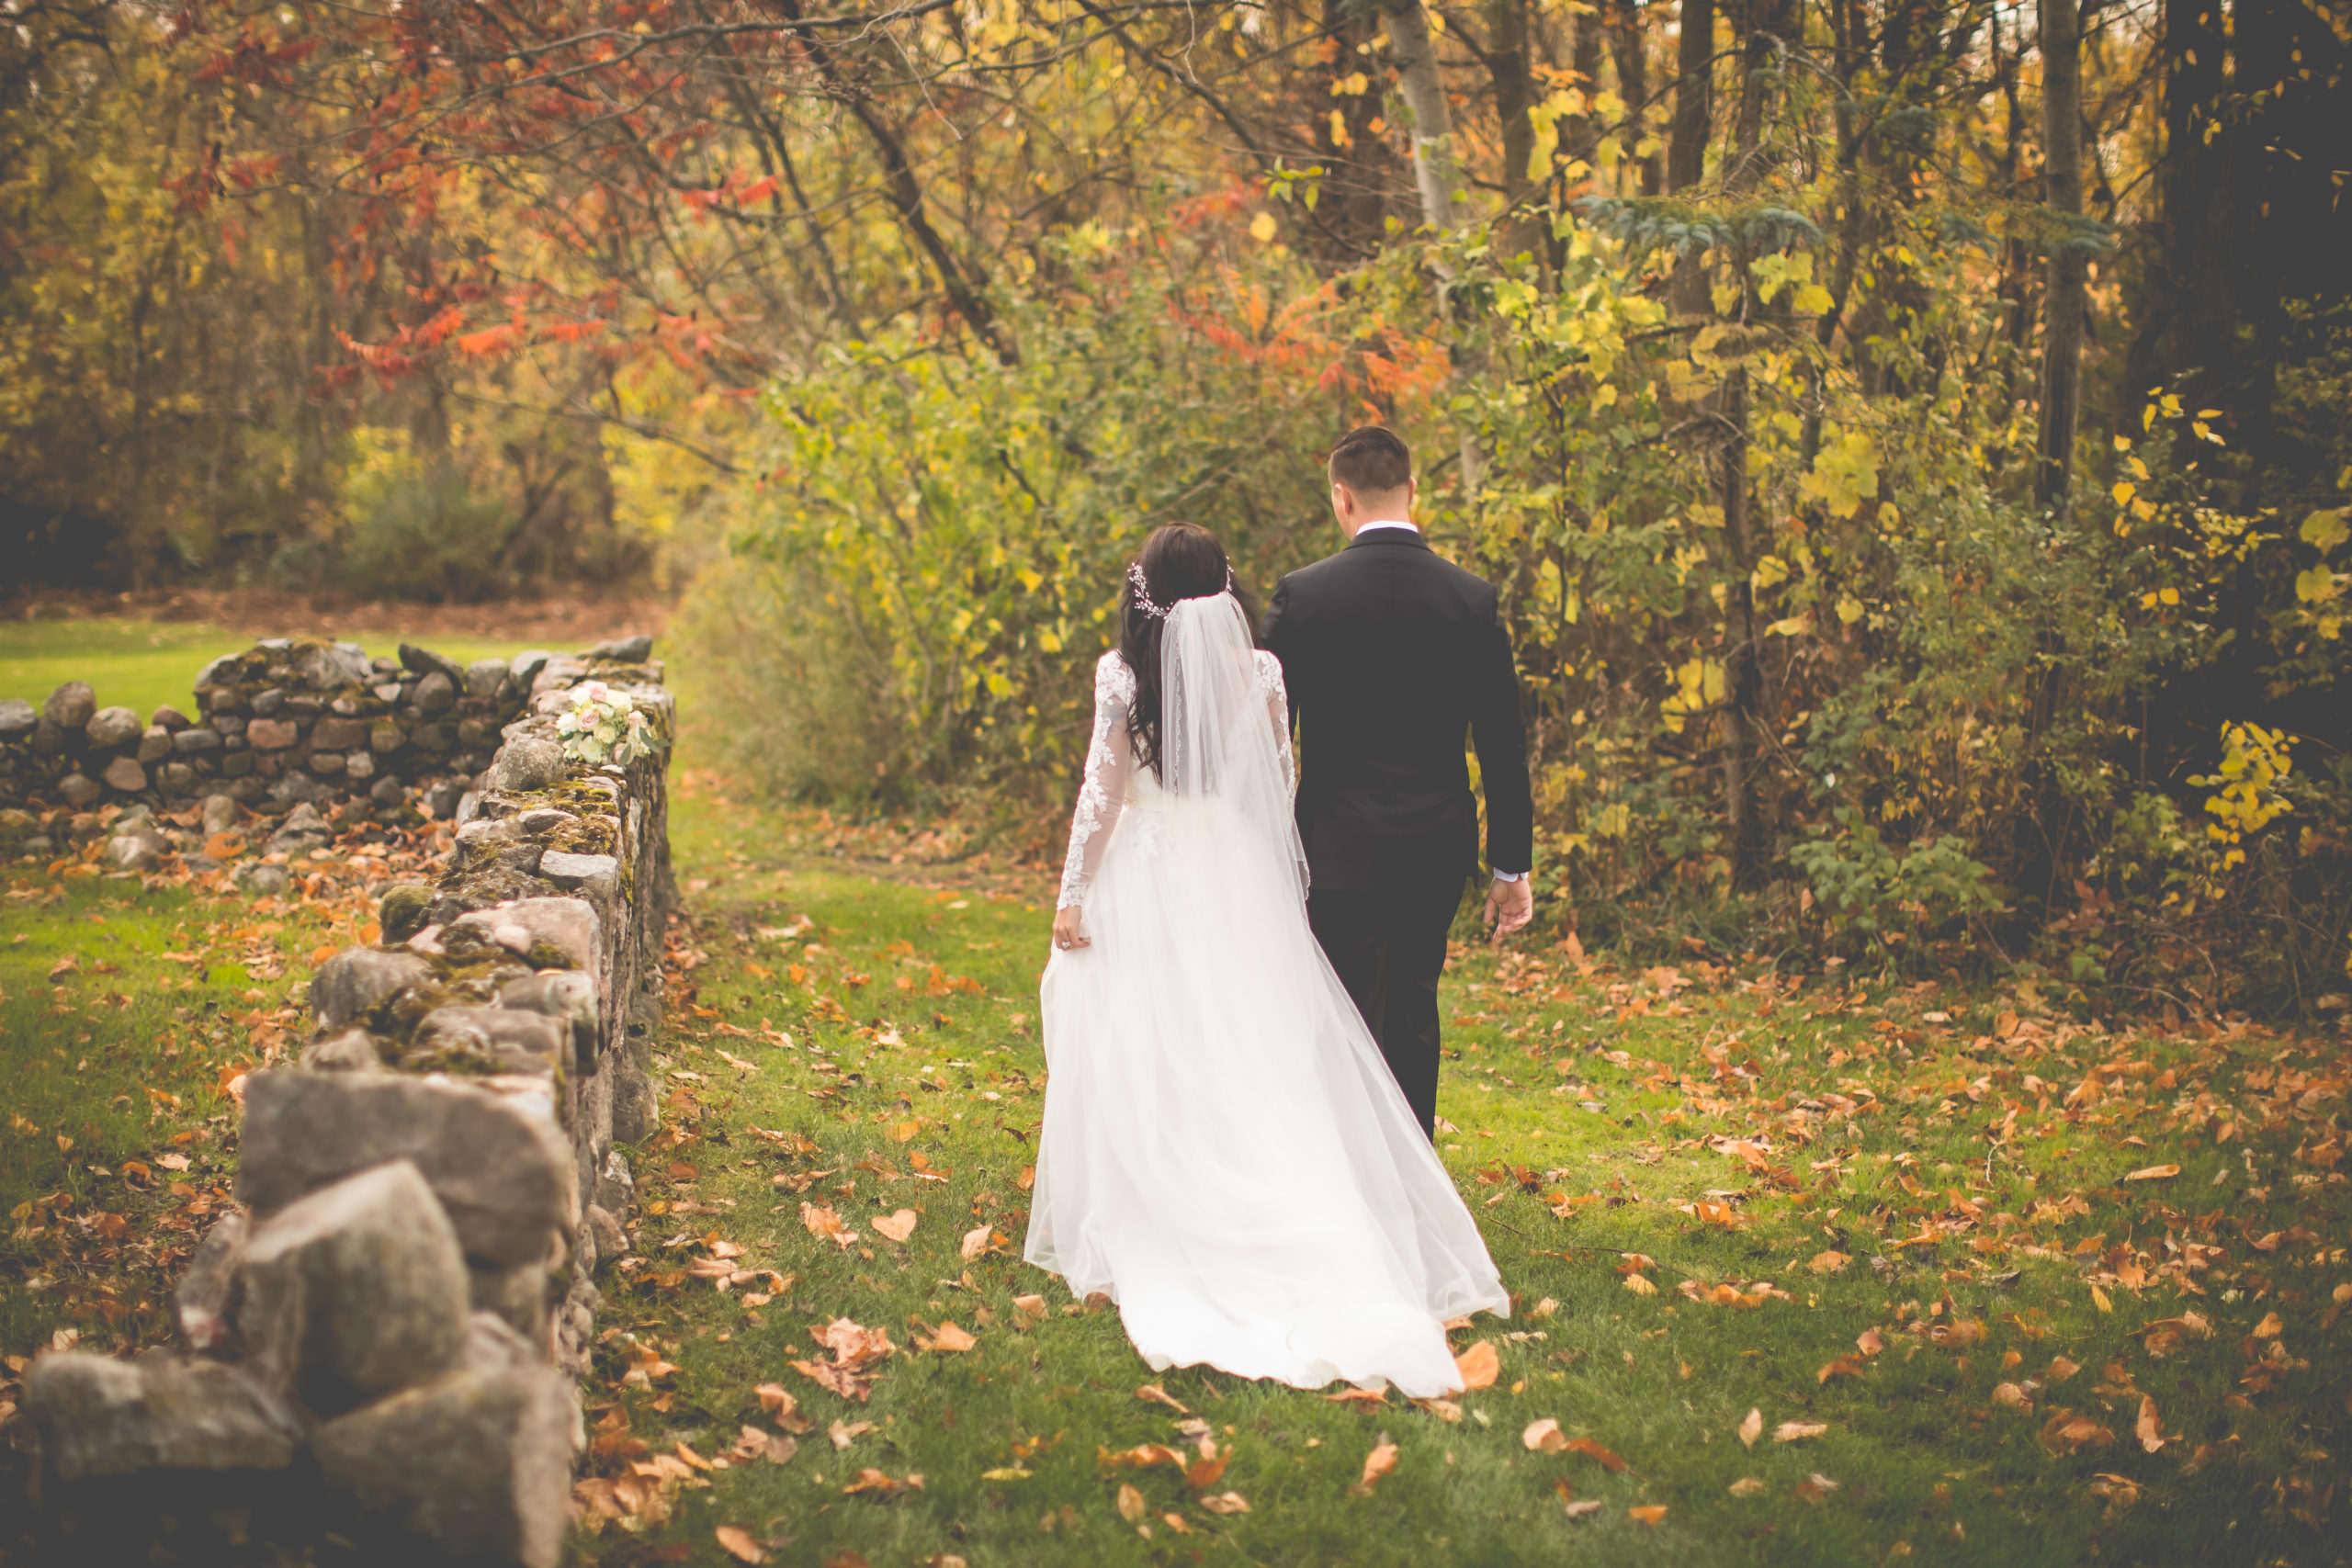 Bride & groom walking through the green grass surrounded by fall foliage and fallen leaves